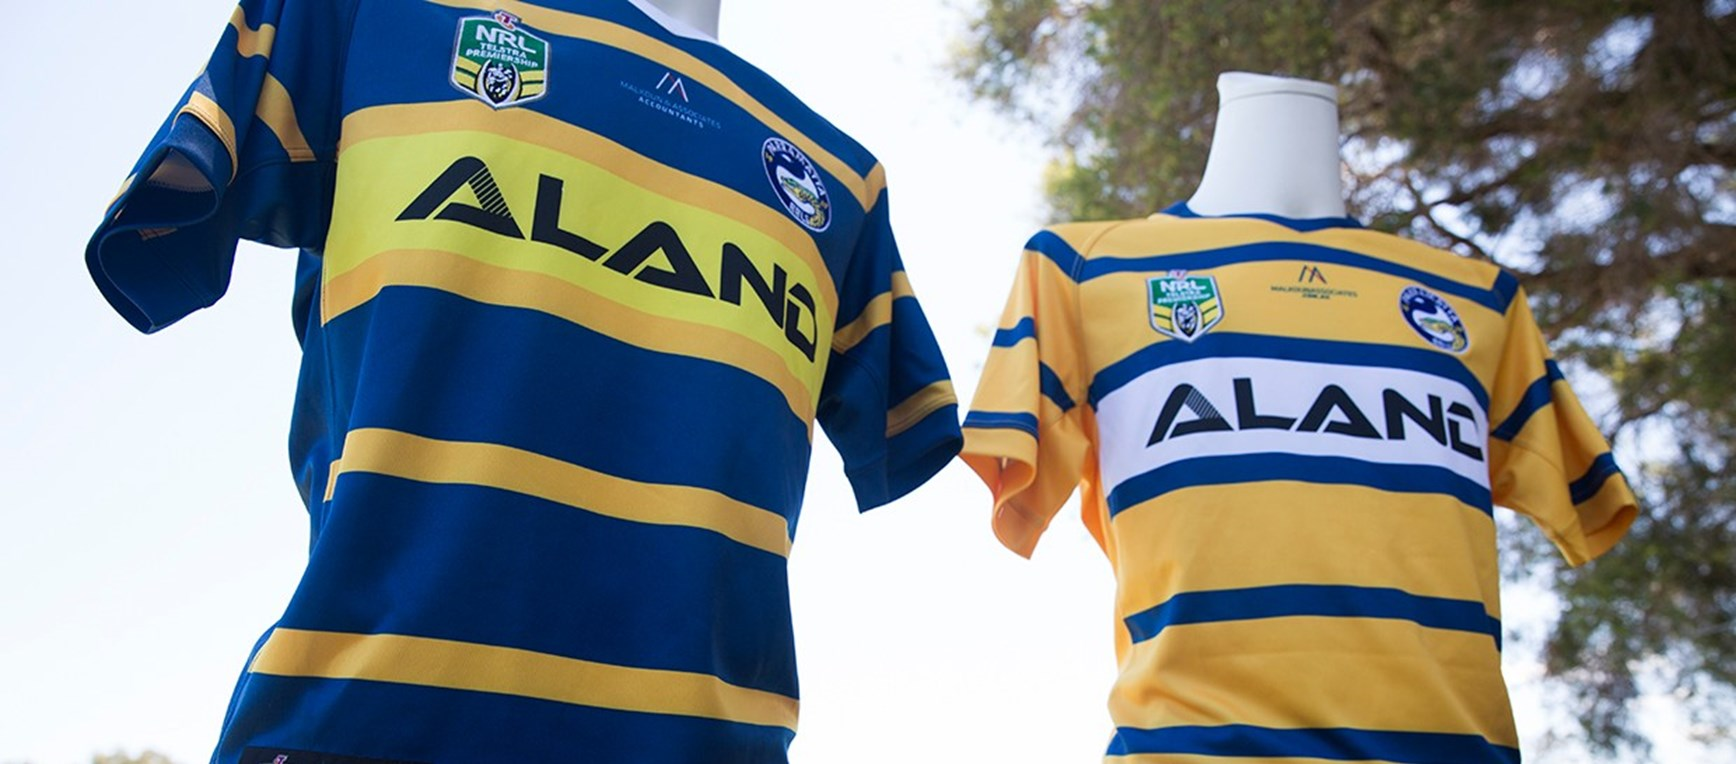 GALLERY | Up close look at the Eels 2018 playing jerseys